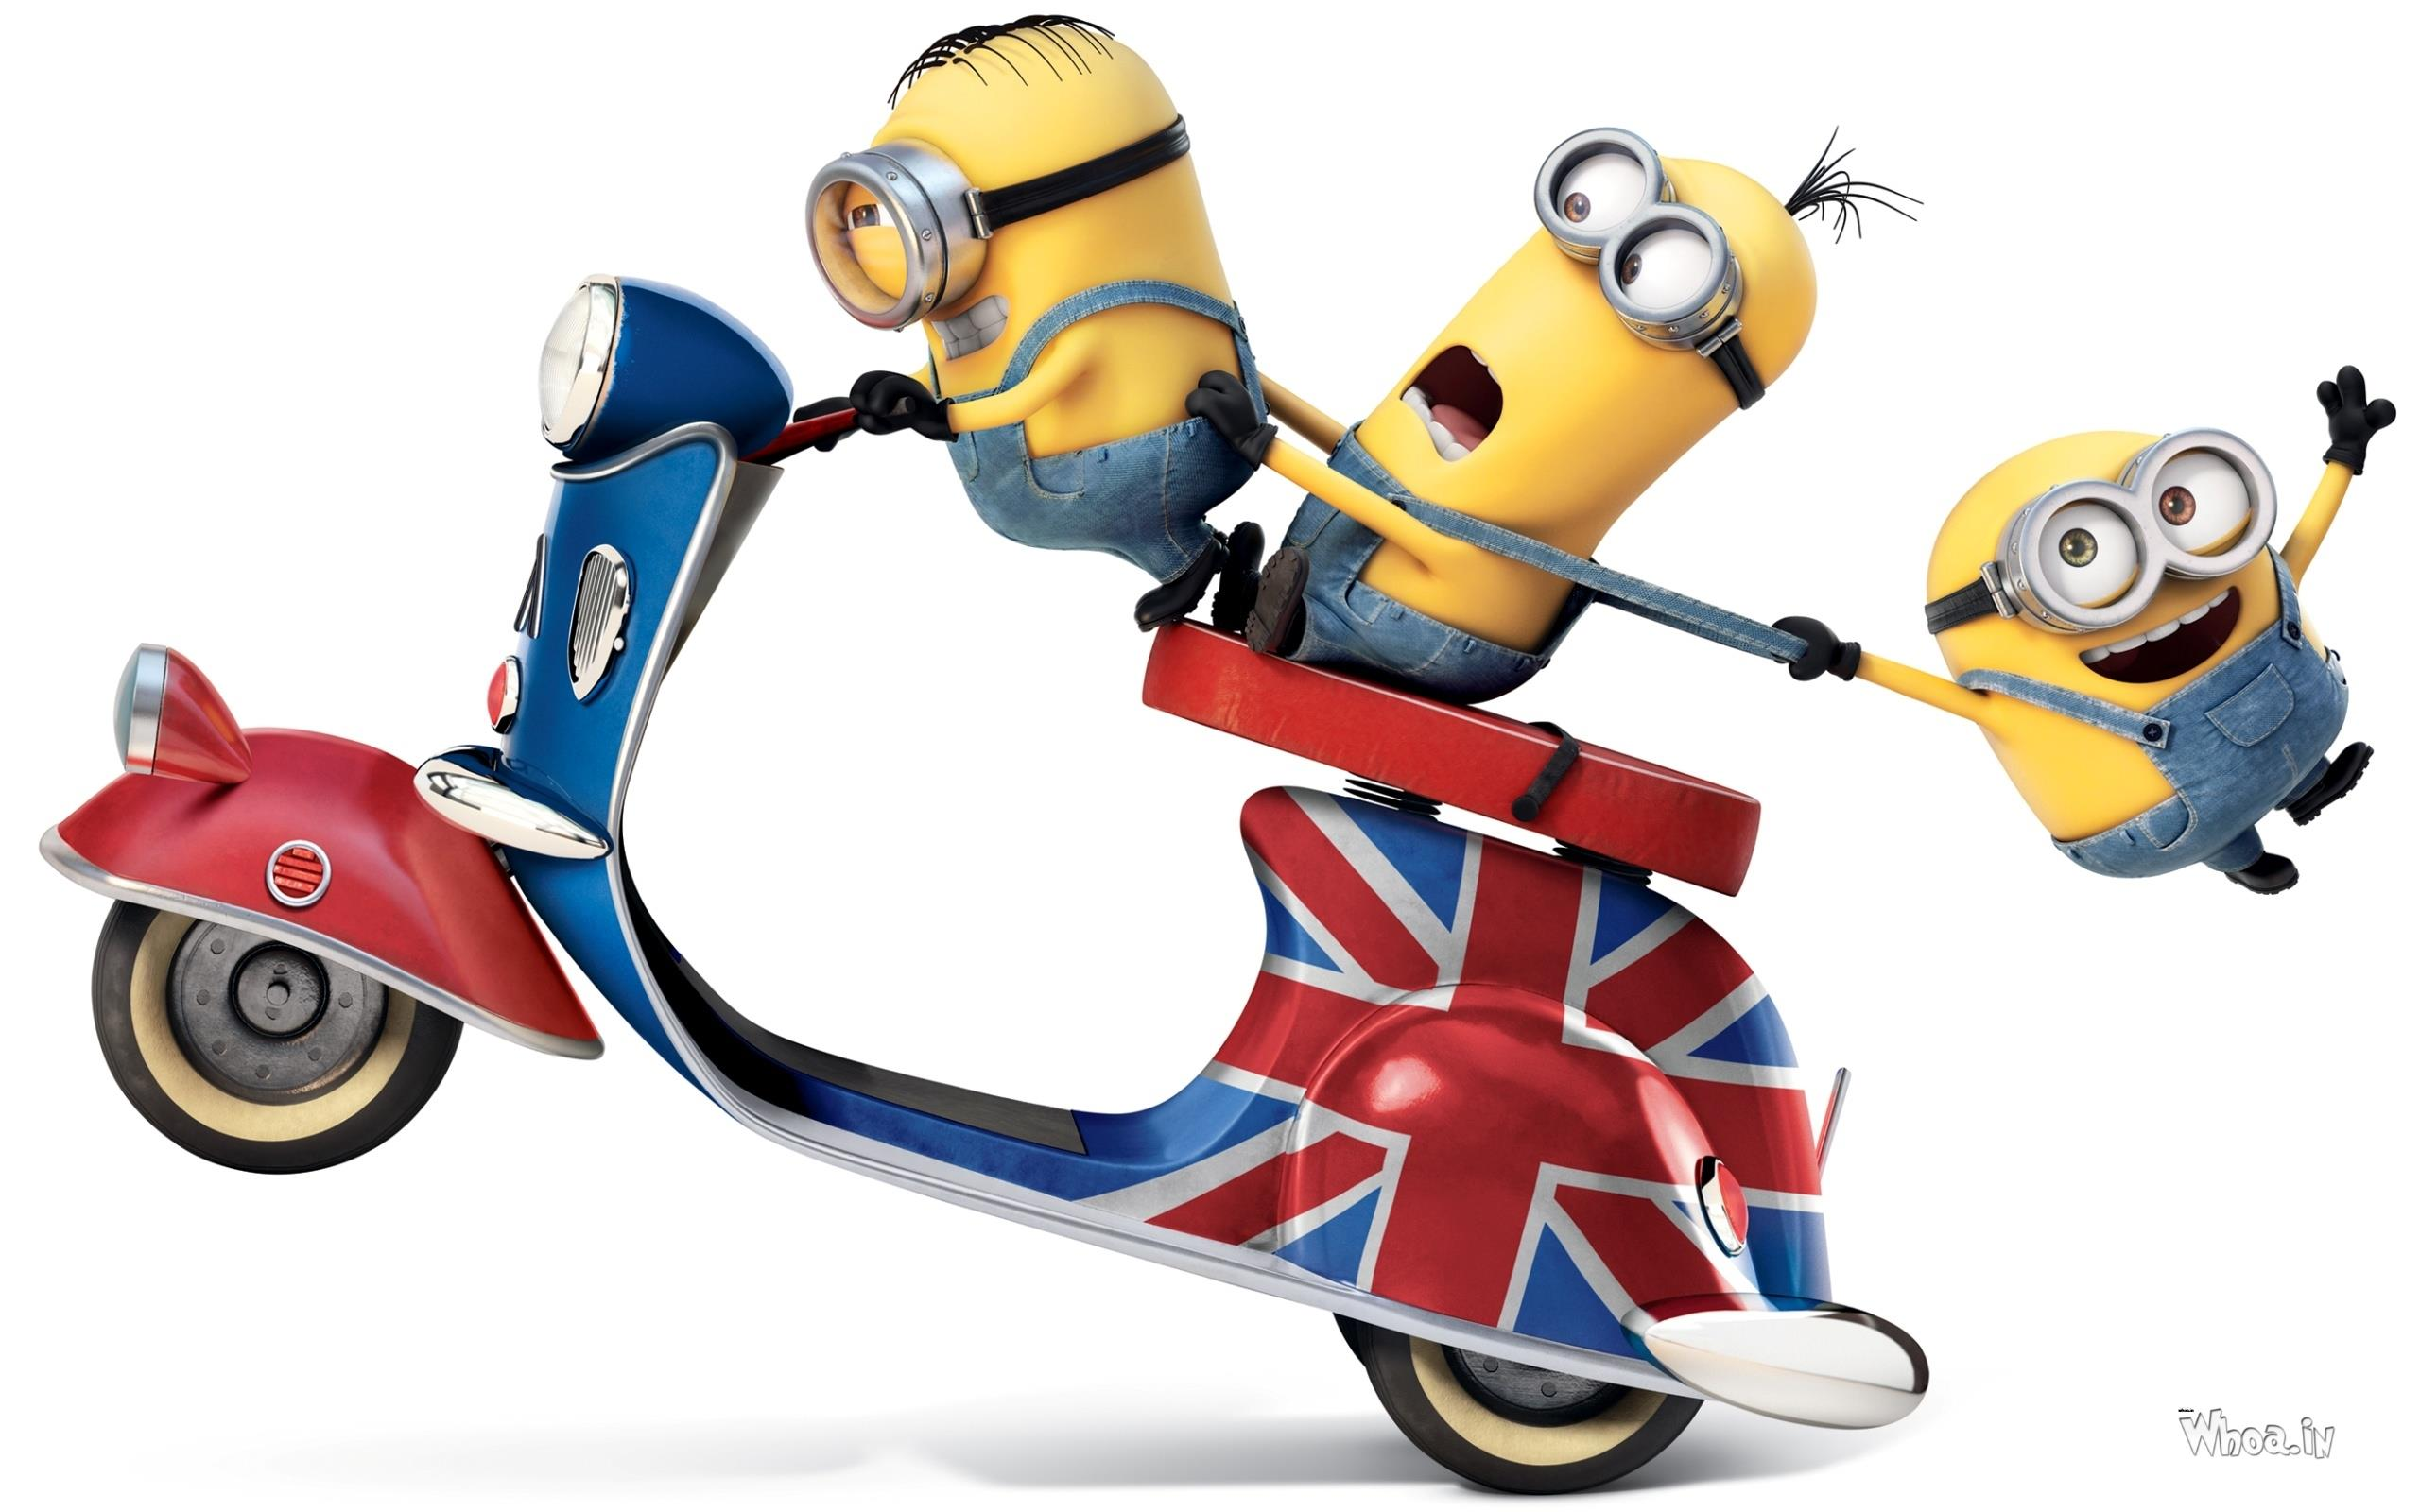 3 minions ride bike in naughty style hd wallpaper